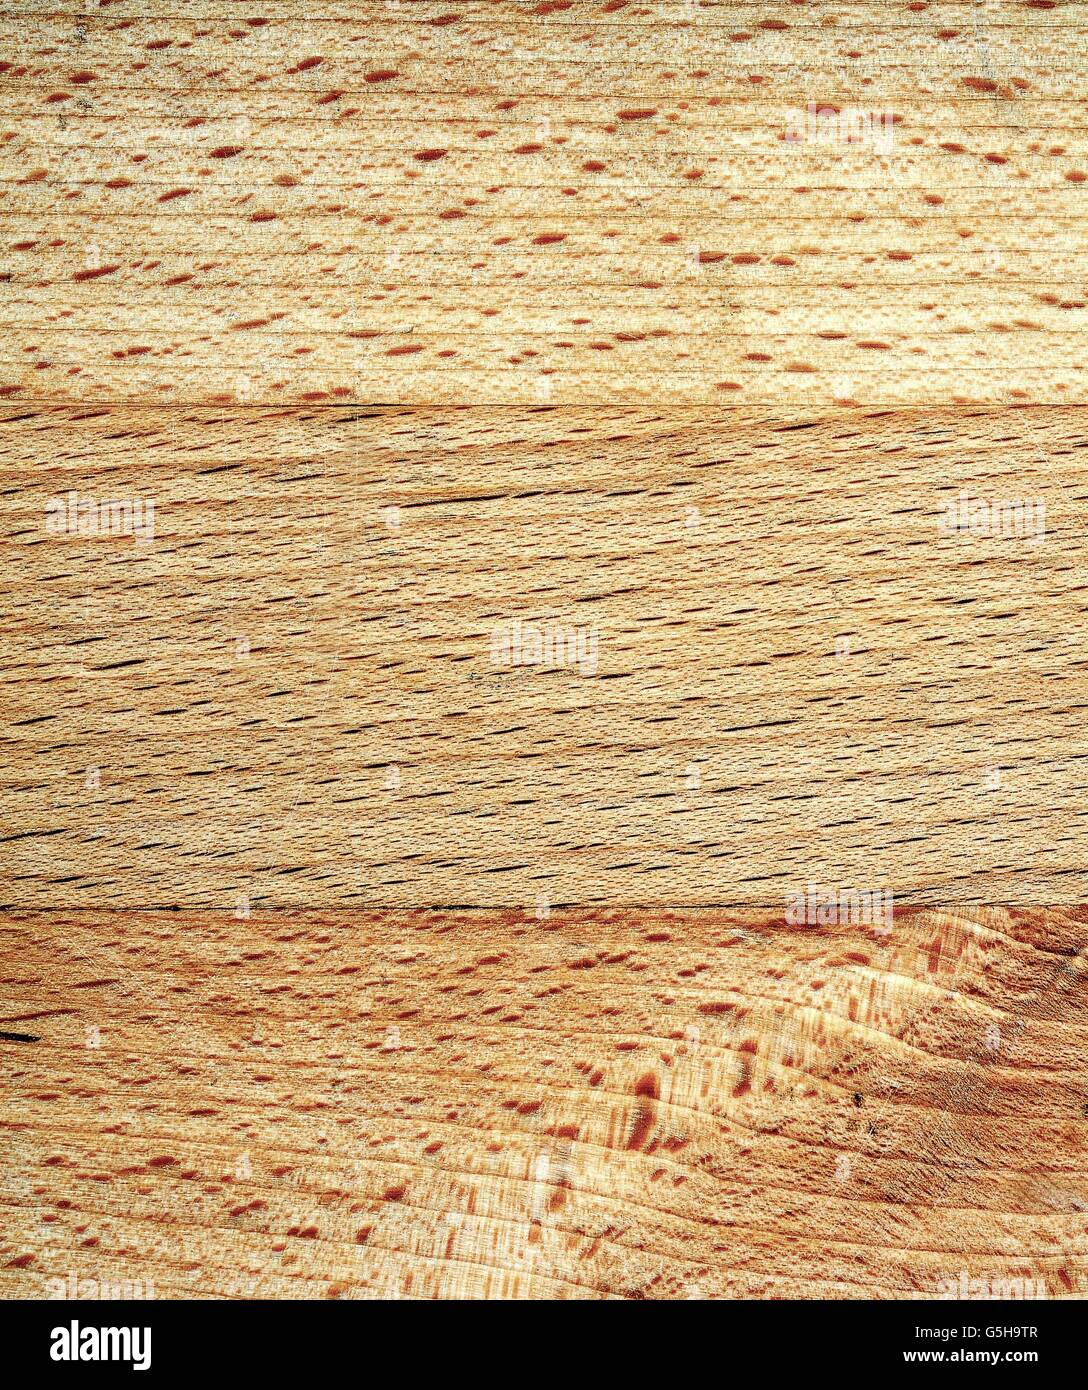 Closeup of wood brown texture with grainy structure. - Stock Image